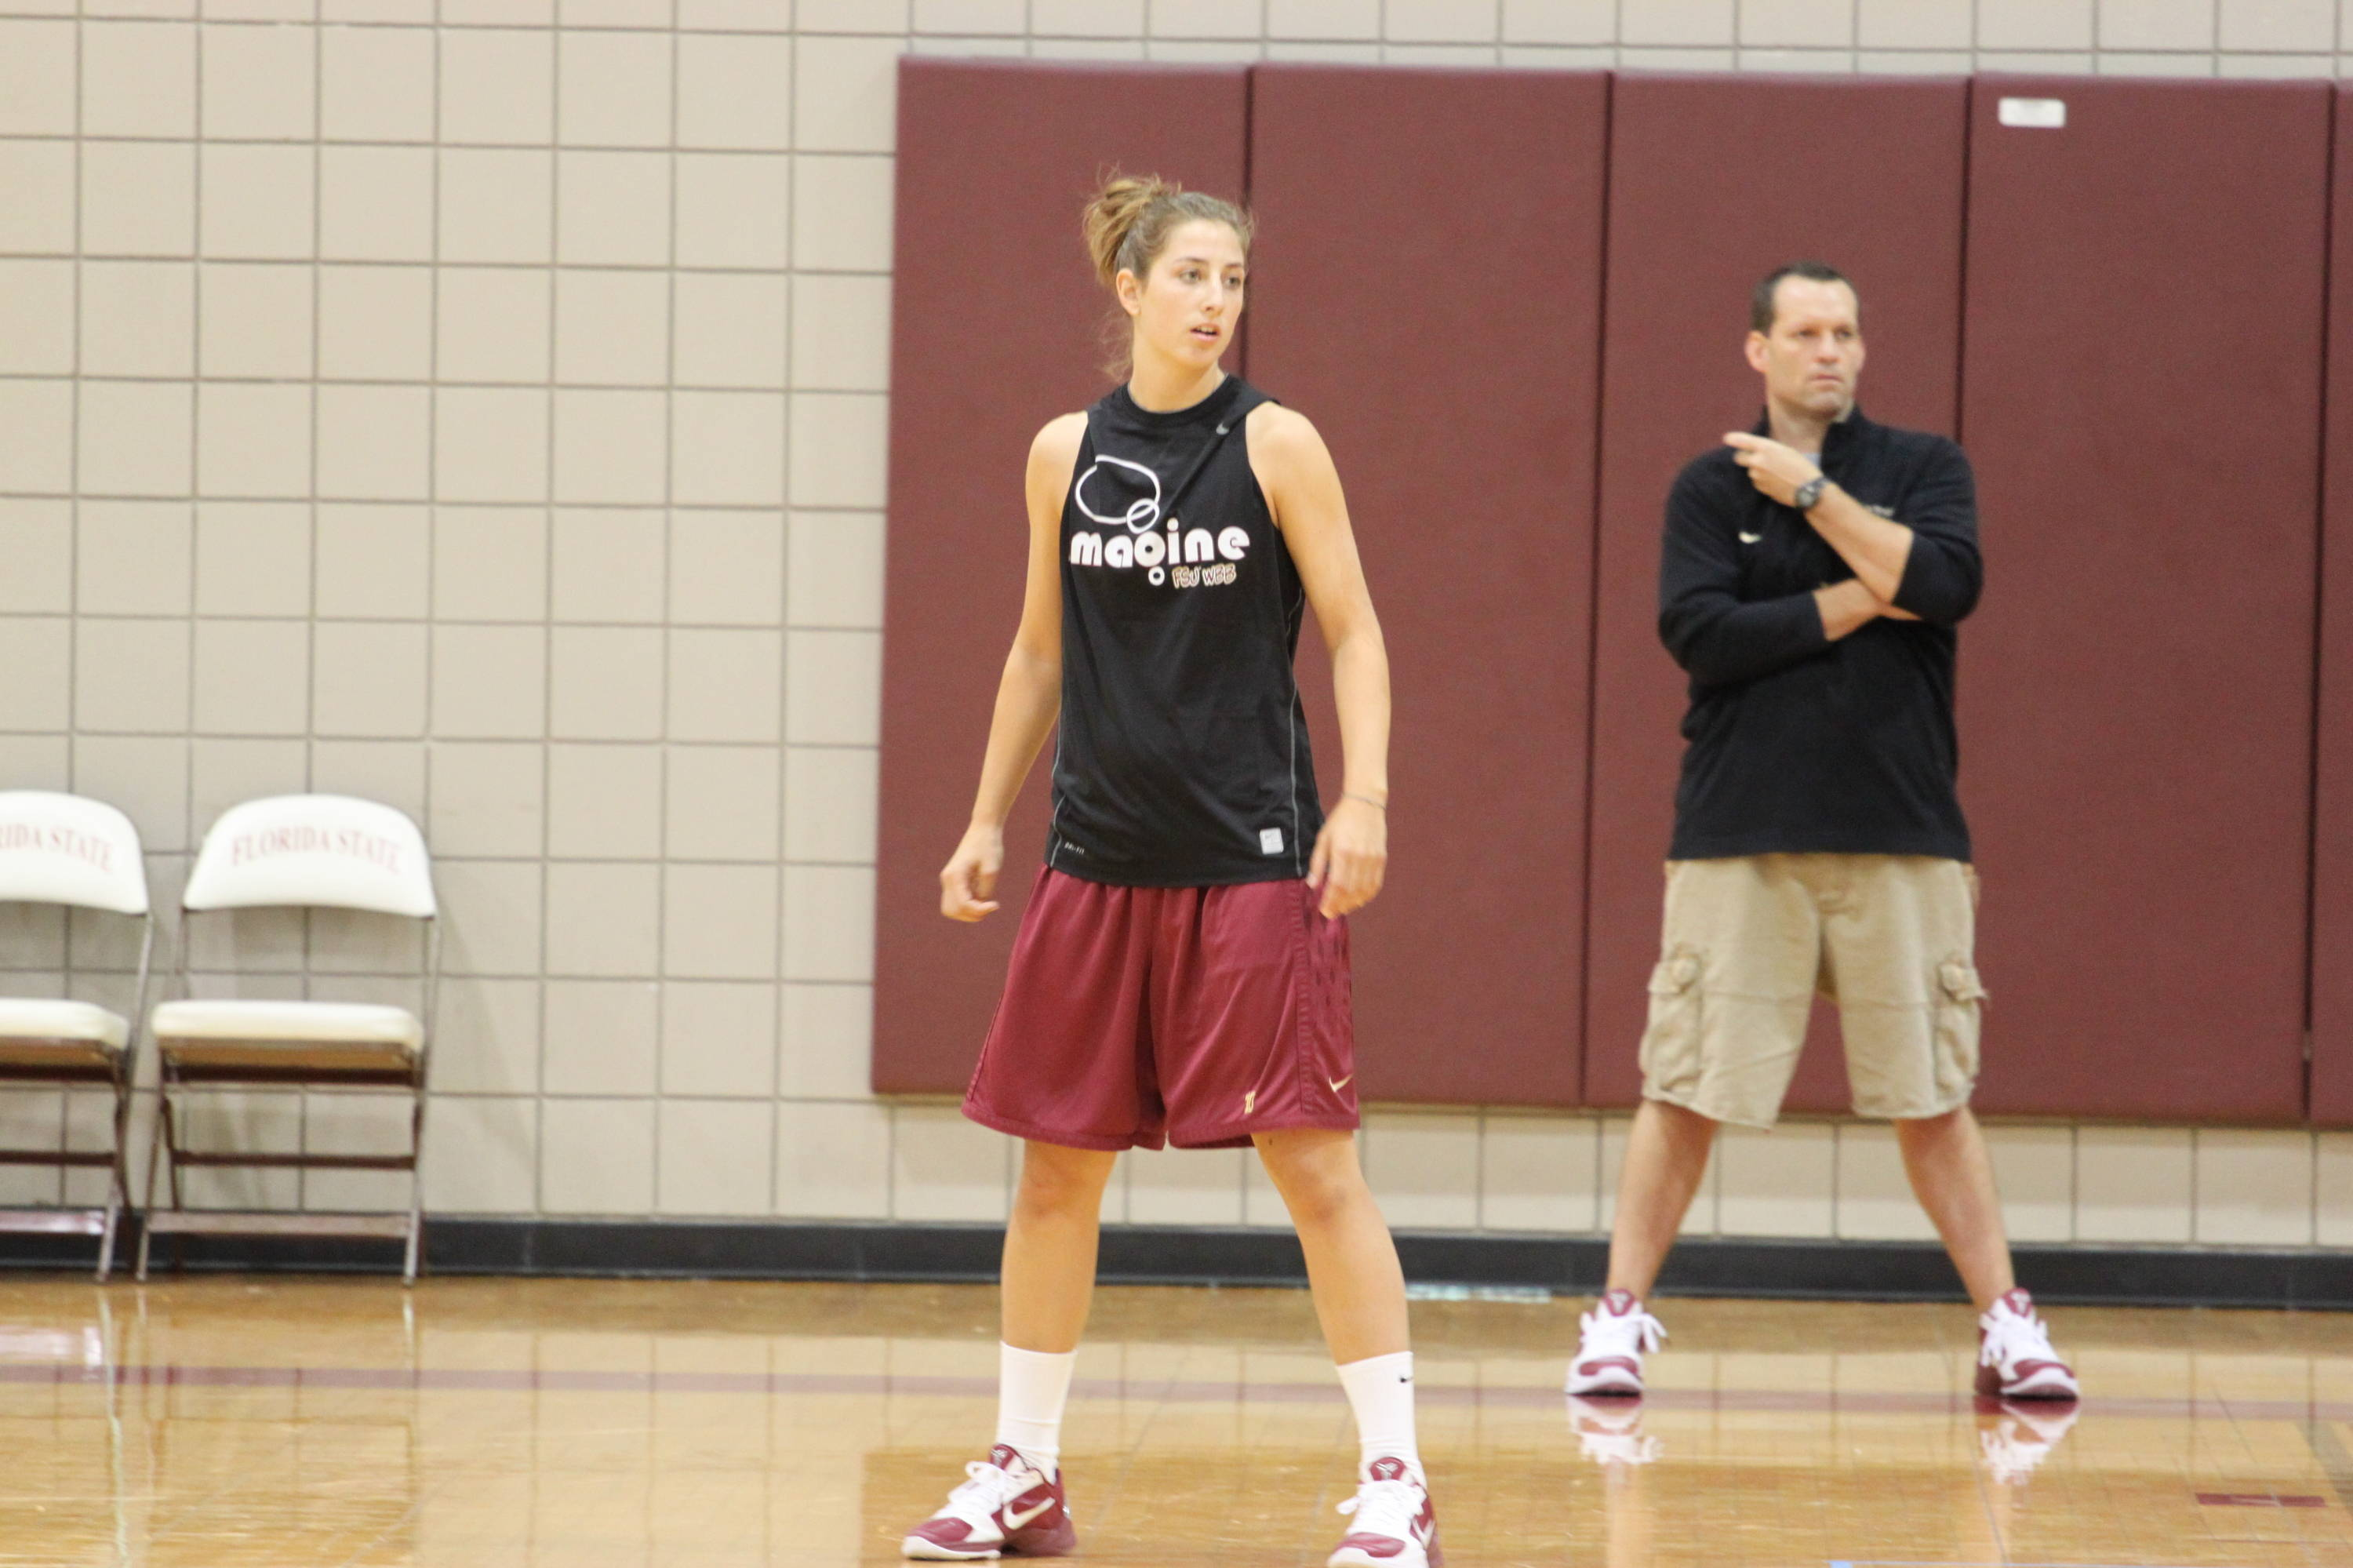 Here's a shot of Leonor Rodriguez with assistant coach Lance White in the background.